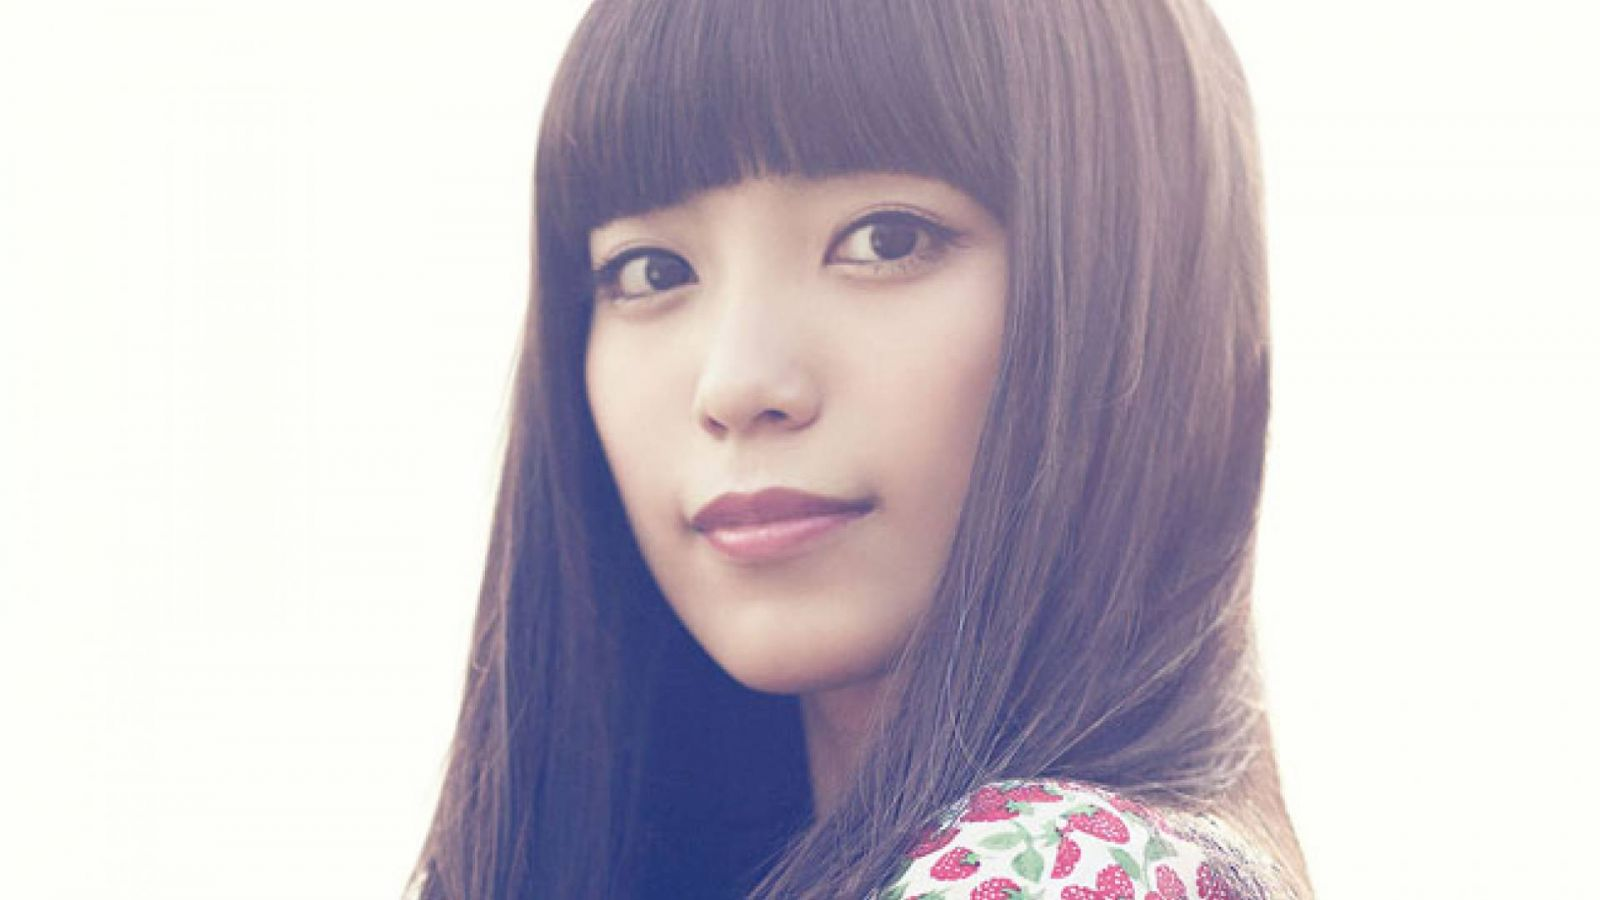 miwa © 2013 Sony Music Records Inc. Provided by E-TALENTBANK.